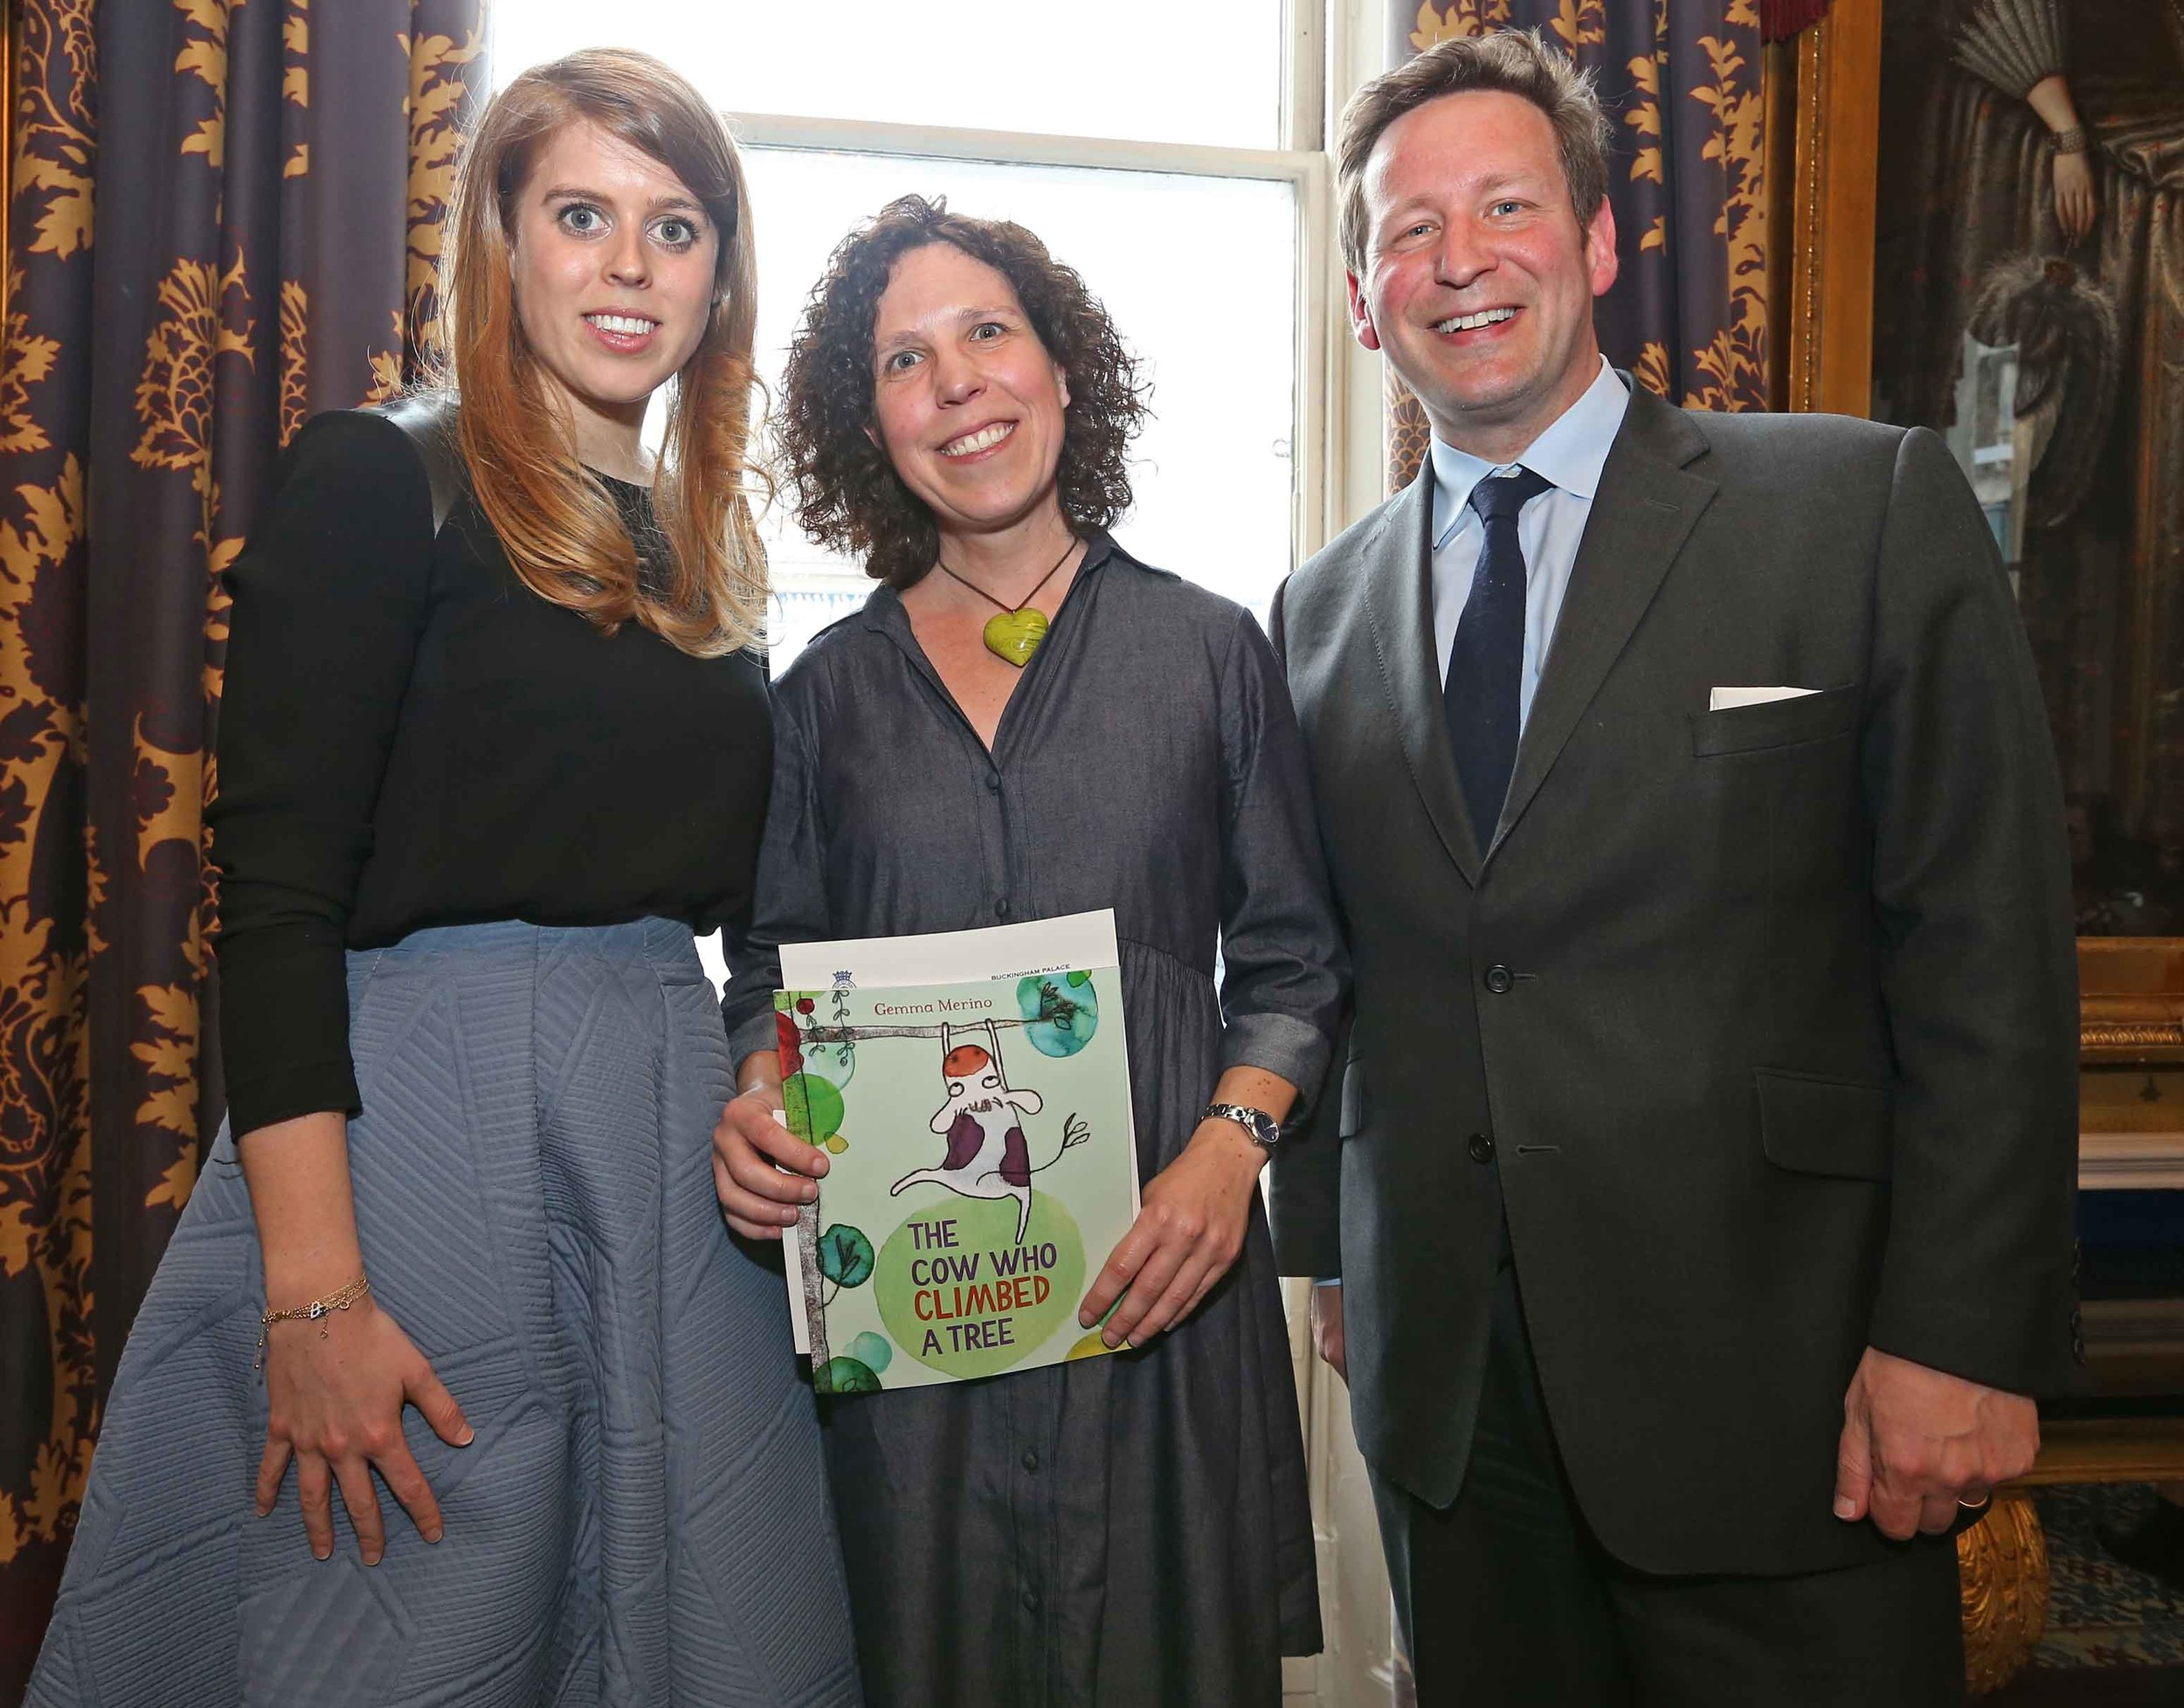 2016 winner of Oscar's Book Prize Gemma Merino, holding her winning children's book The Cow Who Climbed A Tree, seen together with HRH Princess Beatrice and Culture Minister Ed Vaizey